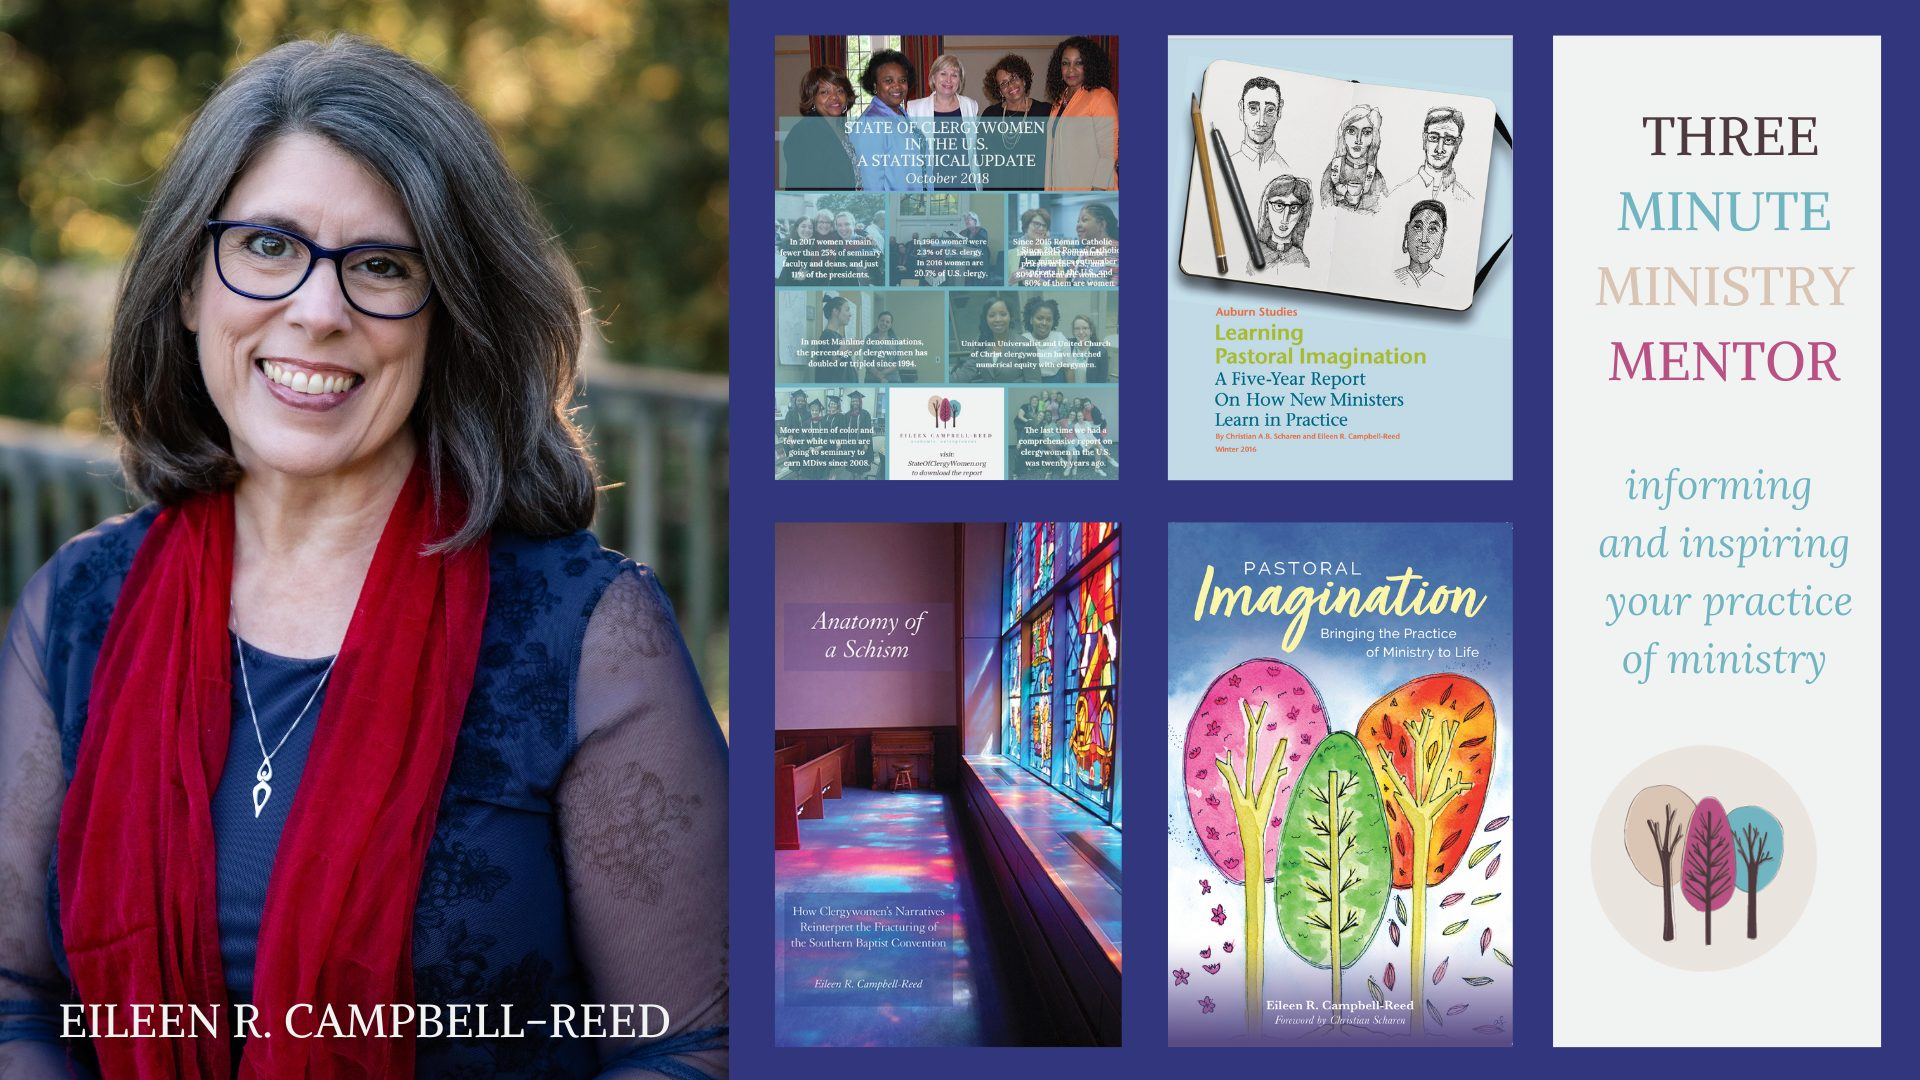 Montage image about Eileen Campbell-Reed. She is a professor at Union Theological Seminary, Central Seminary, host of Three Minute Ministry Mentor, and author of Anatomy of a Schism, State of Clergy women report, and pastoral Imagination